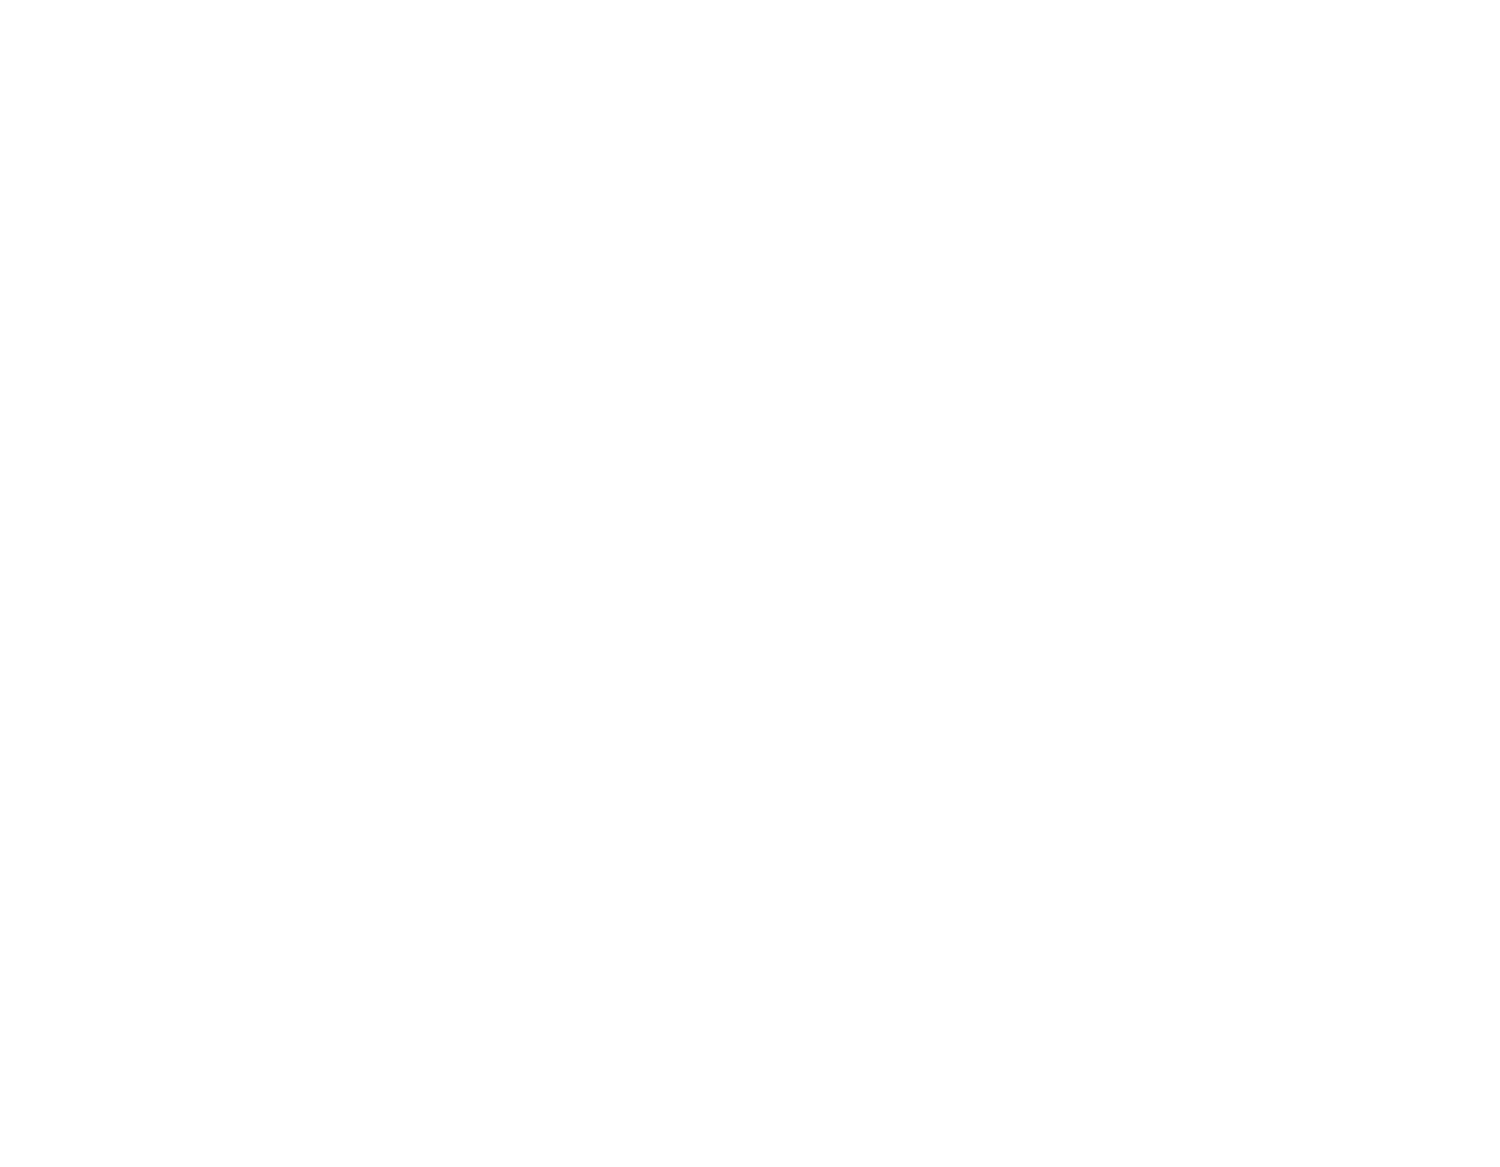 Elizabeth Jones Law & Policy